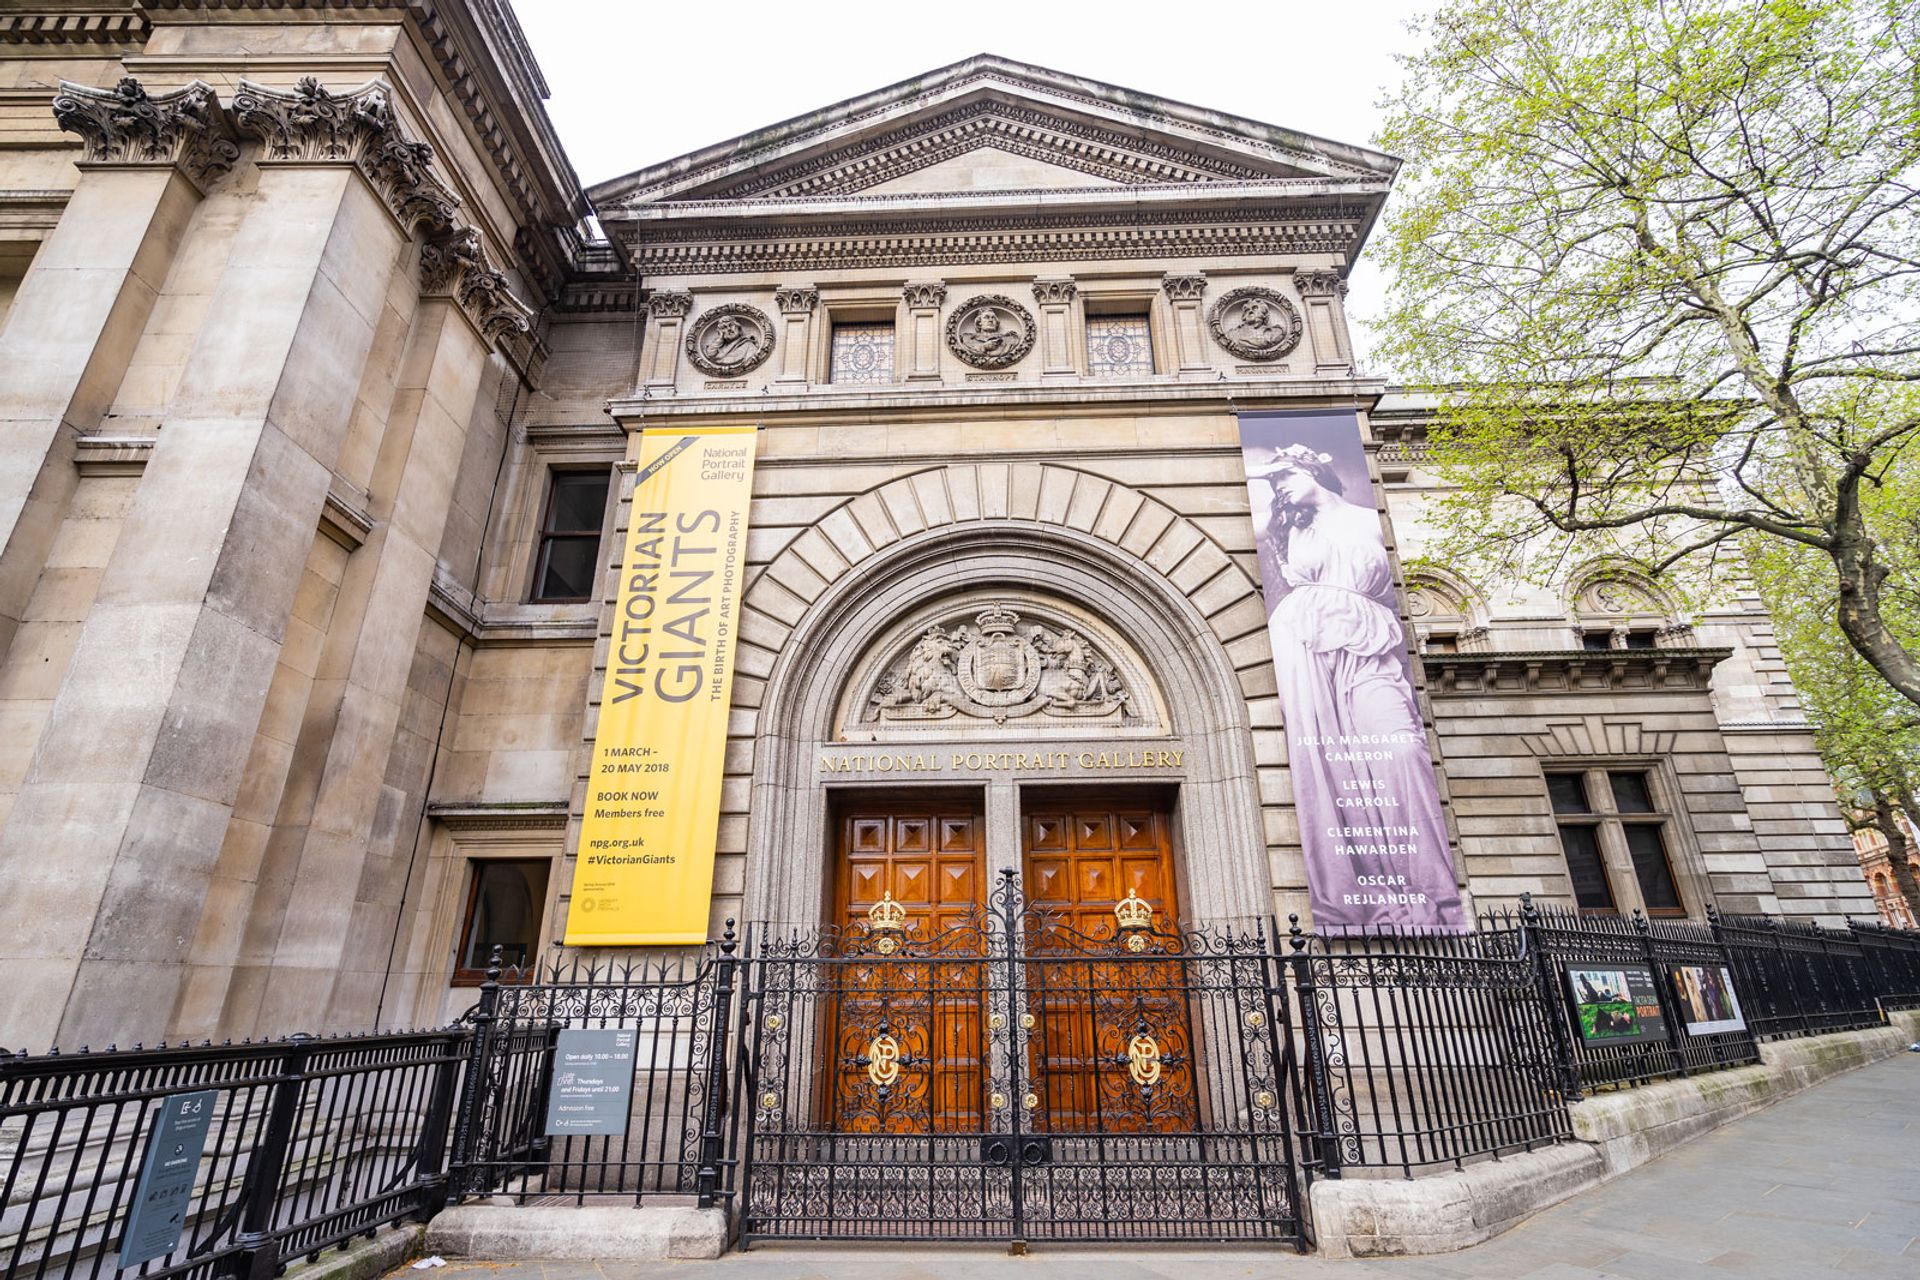 The National Portrait Gallery in London will be closed between between 2020 and 2023